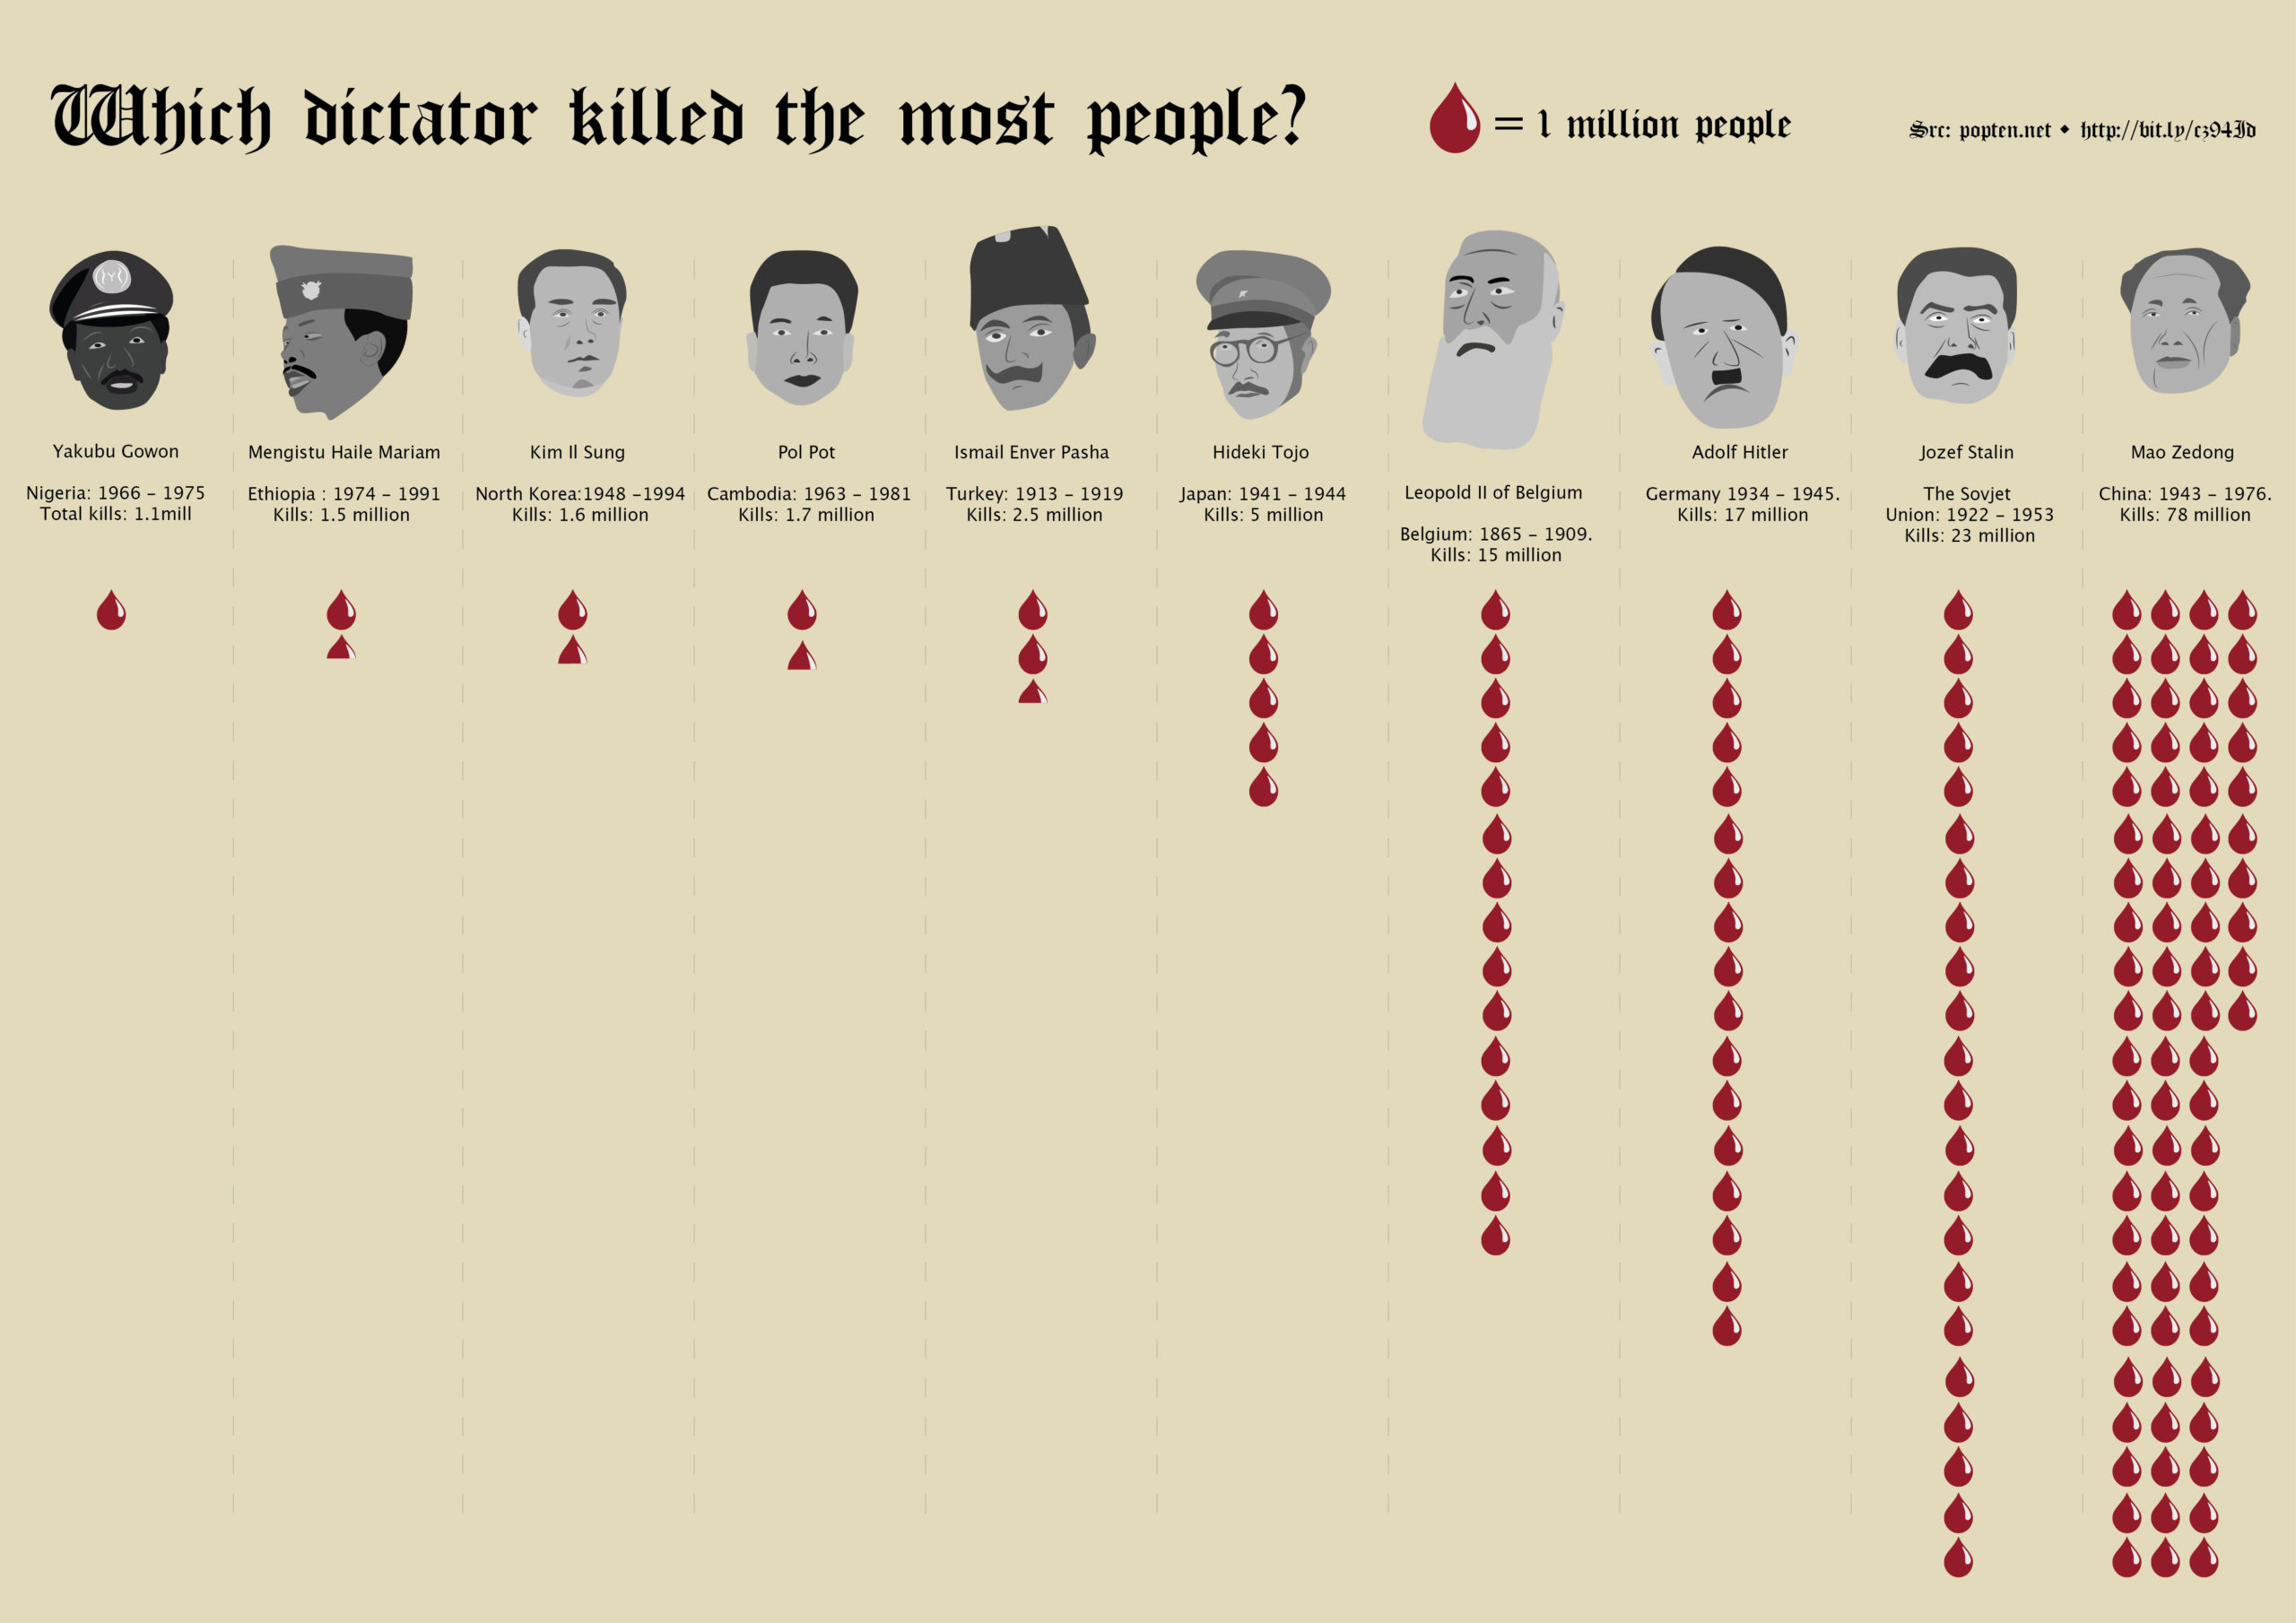 Which Dictator Killed the Most People in history